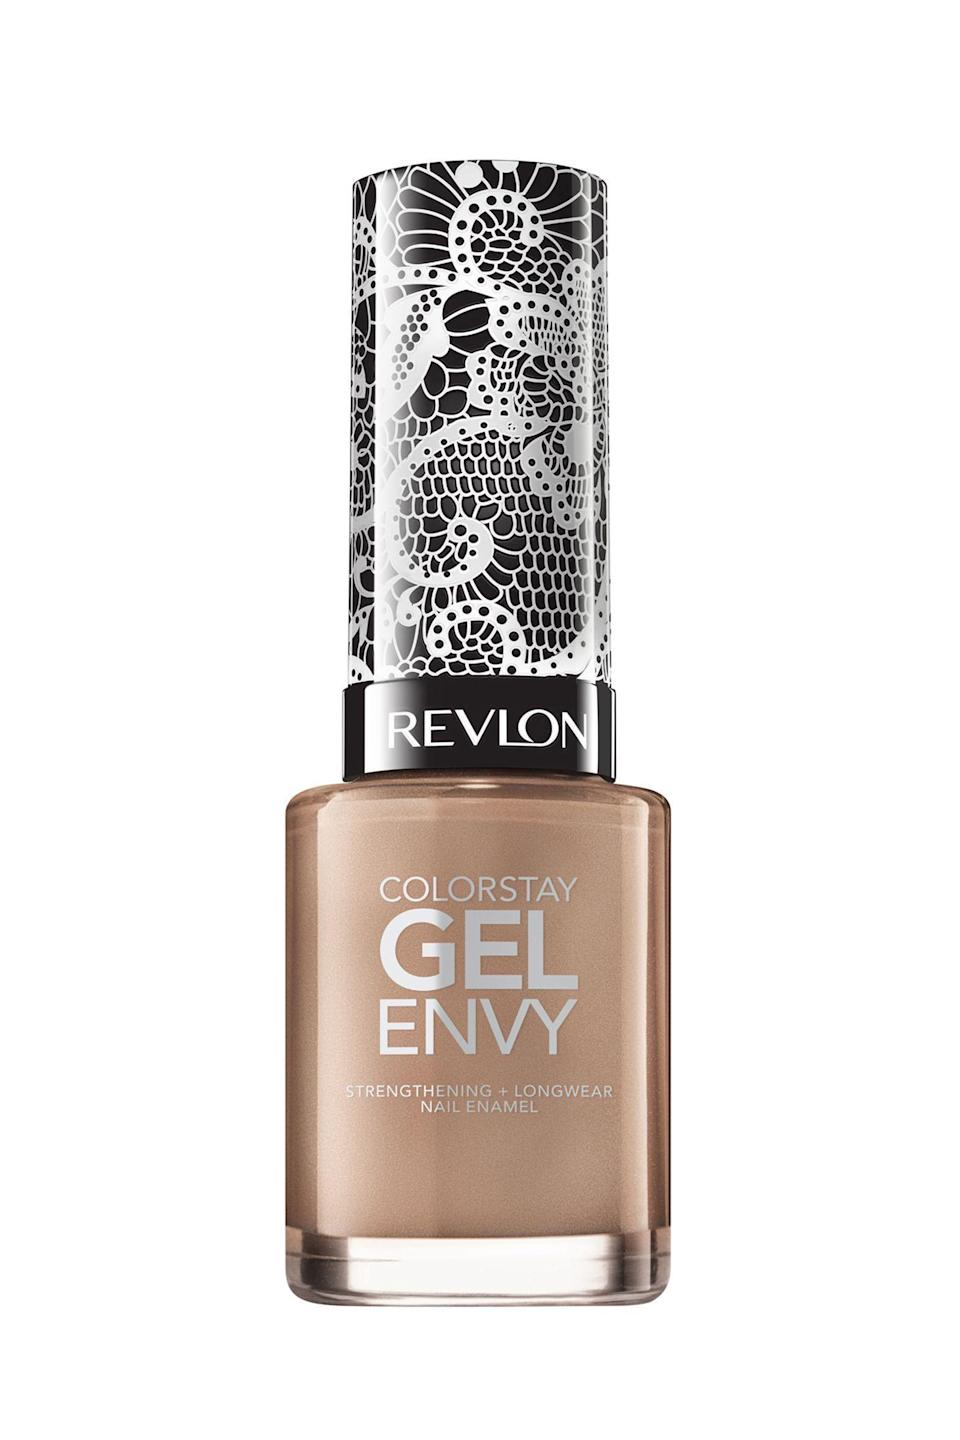 """<p><strong>Revlon</strong></p><p>amazon.com</p><p><strong>$8.99</strong></p><p><a href=""""https://www.amazon.com/dp/B07QG7K2WC?tag=syn-yahoo-20&ascsubtag=%5Bartid%7C10058.g.3310%5Bsrc%7Cyahoo-us"""" rel=""""nofollow noopener"""" target=""""_blank"""" data-ylk=""""slk:SHOP IT"""" class=""""link rapid-noclick-resp"""">SHOP IT</a></p><p>Relieve yourself from the daunting decision of deciding on a nail color and lean into a classic neutral. This shade is endorsed by a supermodel, Ashley Graham, in case you needed more confirmation that this color will give you runway-ready nails. Plus, this cool-toned nude will go with every outfit, and can you ask for anything more? </p>"""